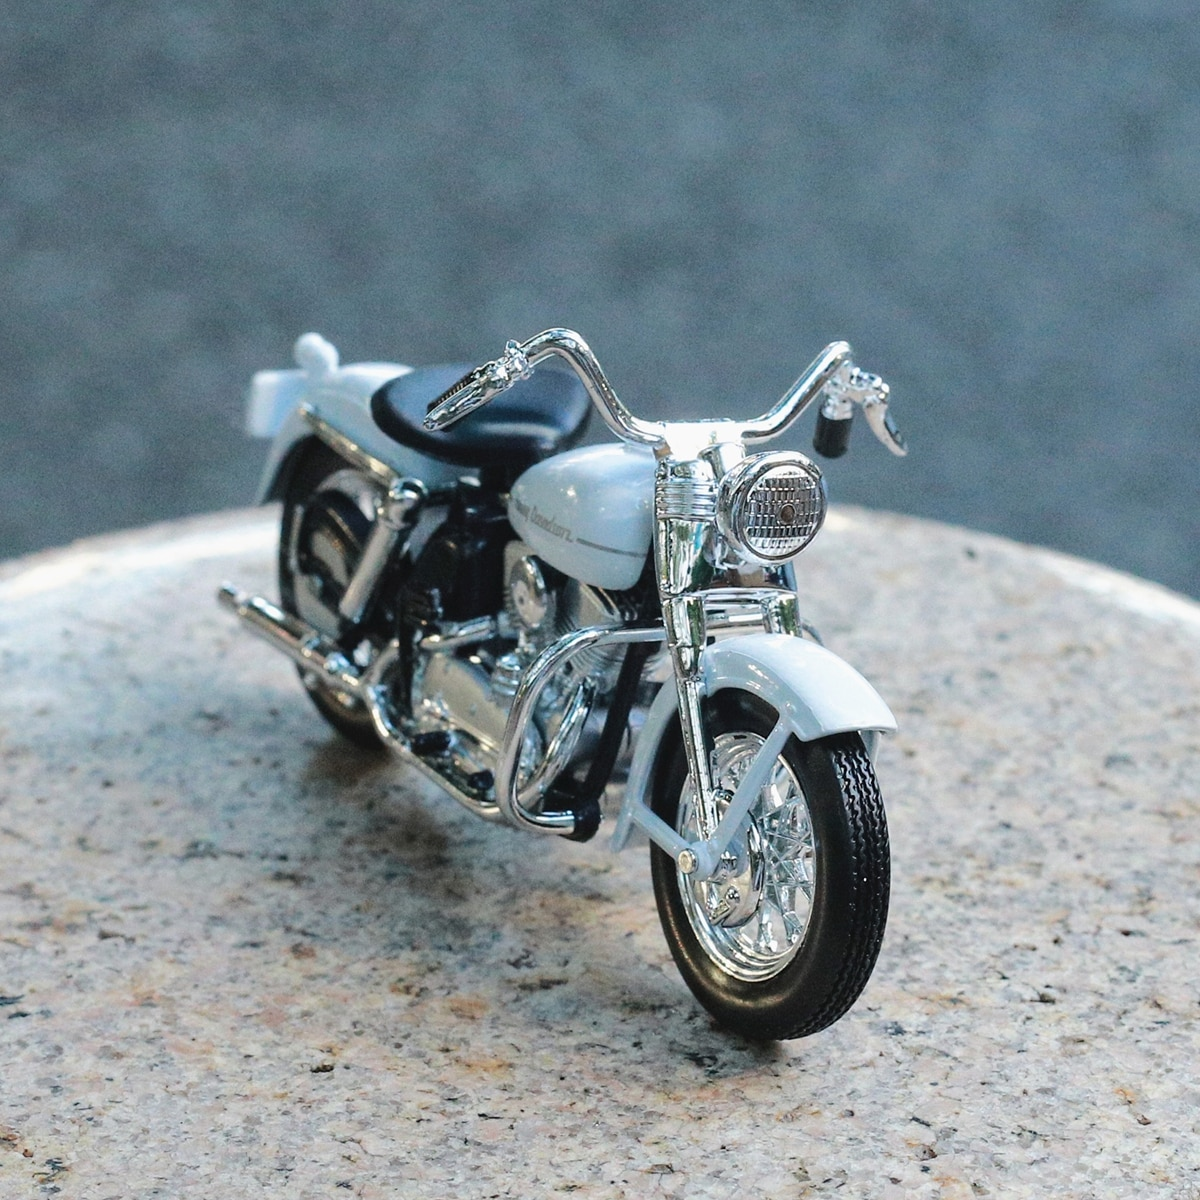 Maisto 1:18 Harley 1952 K Model Metal Motorcycle Diecast Bike Car Model Toy Collection Mini Moto Gift mini vintage metal toy motorcycle toys hot wheel safe cool diecast blue yellow red motorcycle model toys for kids collection